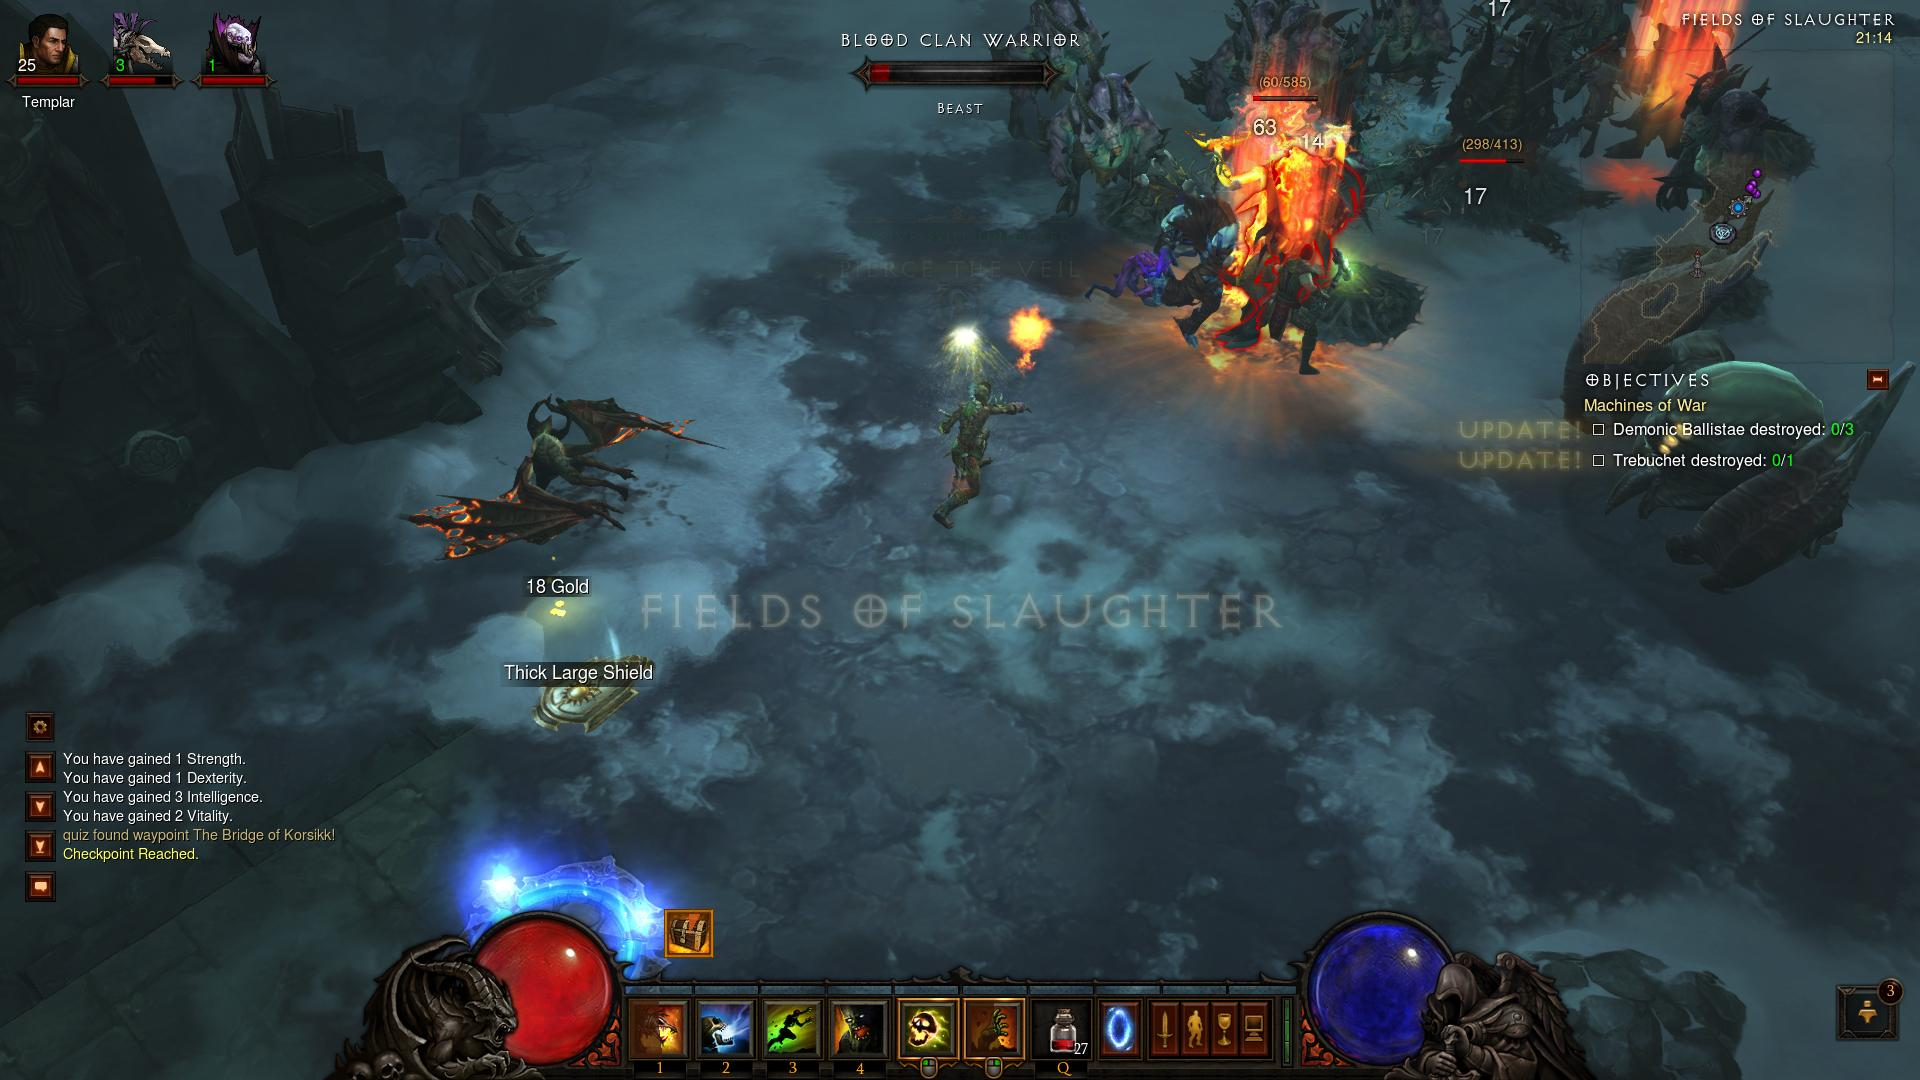 Diablo 3 Fields of Slaughter d3 screenshot